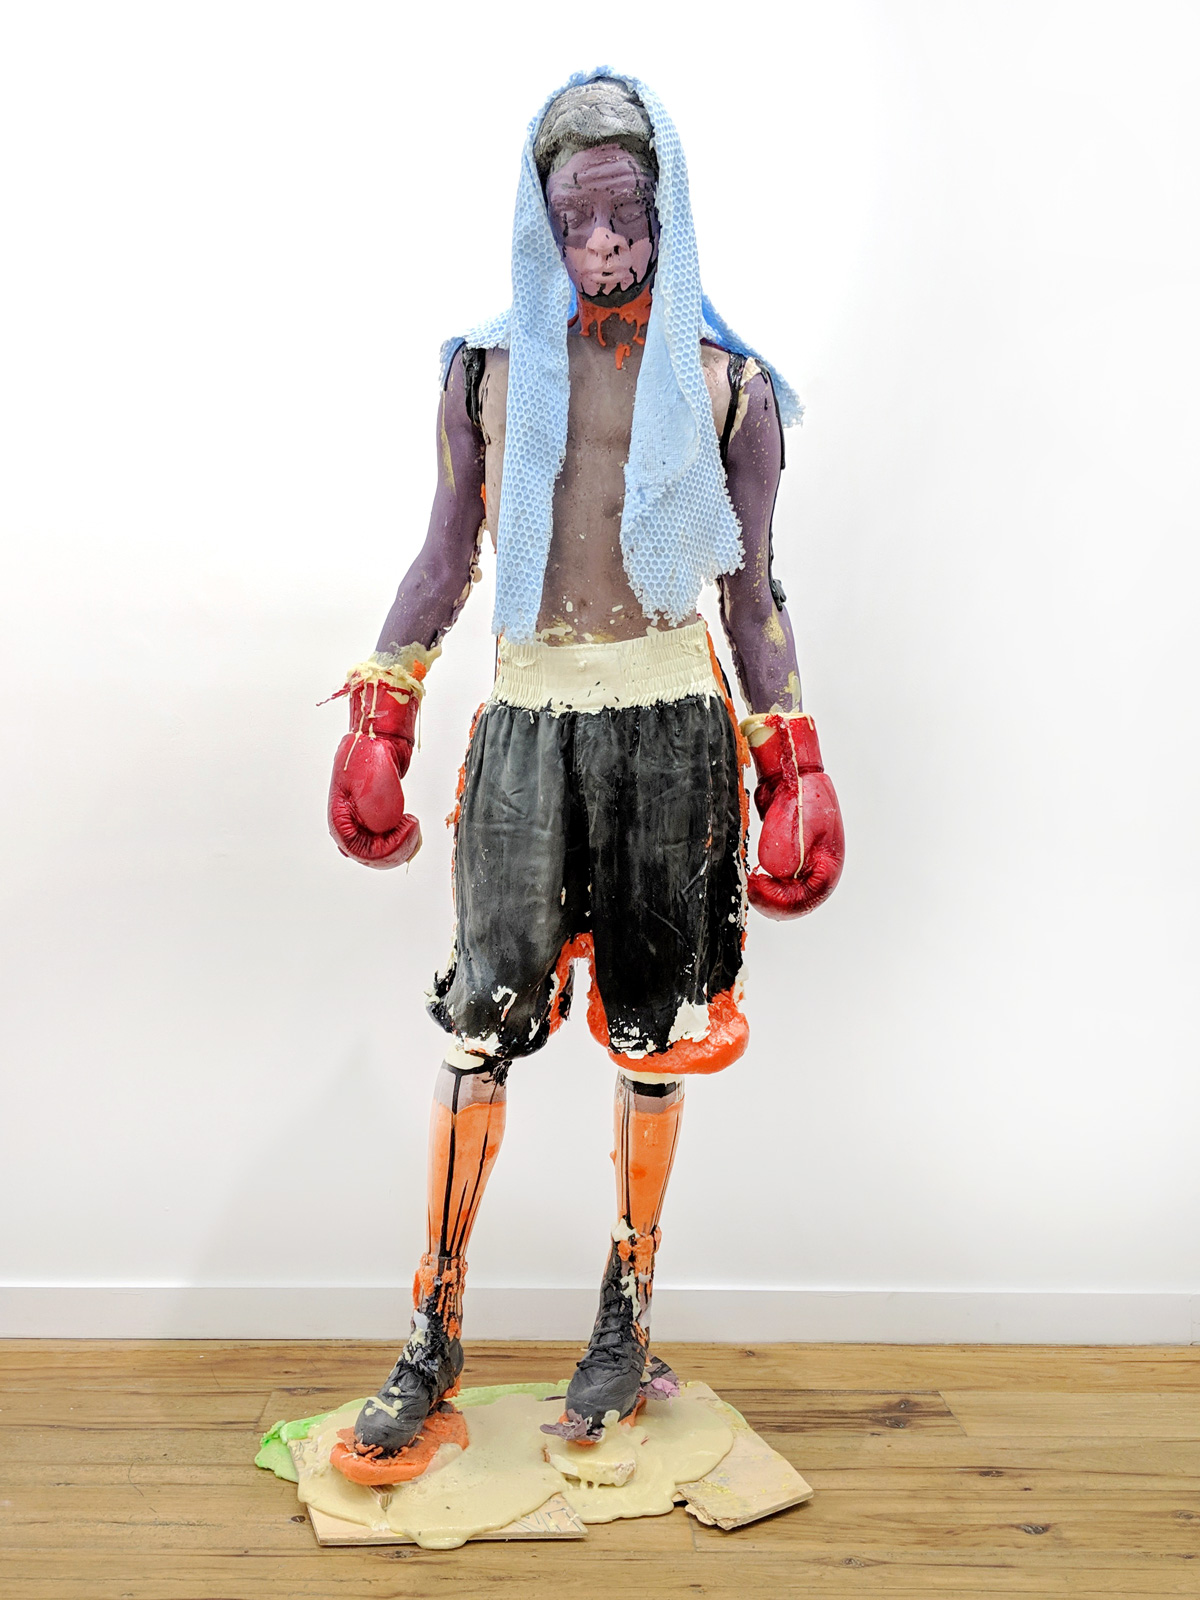 Folkert de Jong 2019 Pigmented polyurethane, plywood, metal, silicone rubber 74.8 x 19.69 x 25.59 inches (190 x 50 x 65 cm) 2019 Marc Straus Gallery